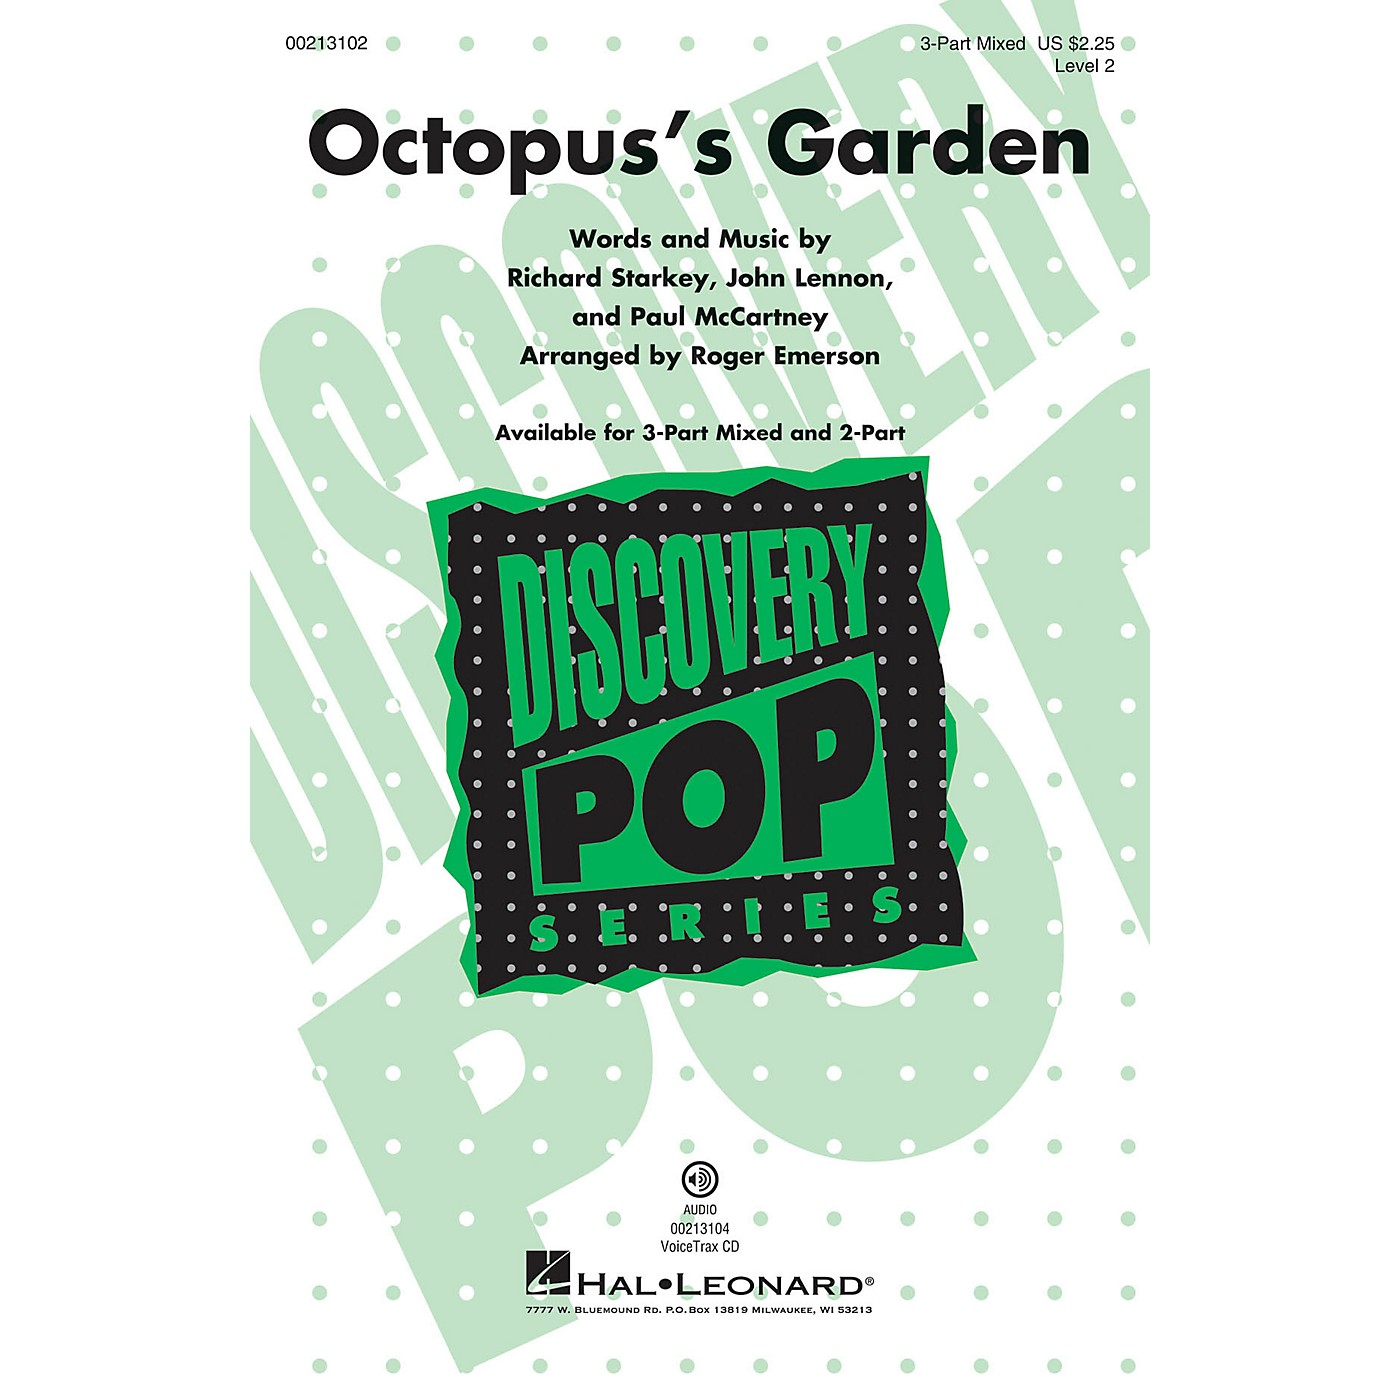 Hal Leonard Octopus's Garden (Discovery Level 2) 3-Part Mixed arranged by Roger Emerson thumbnail